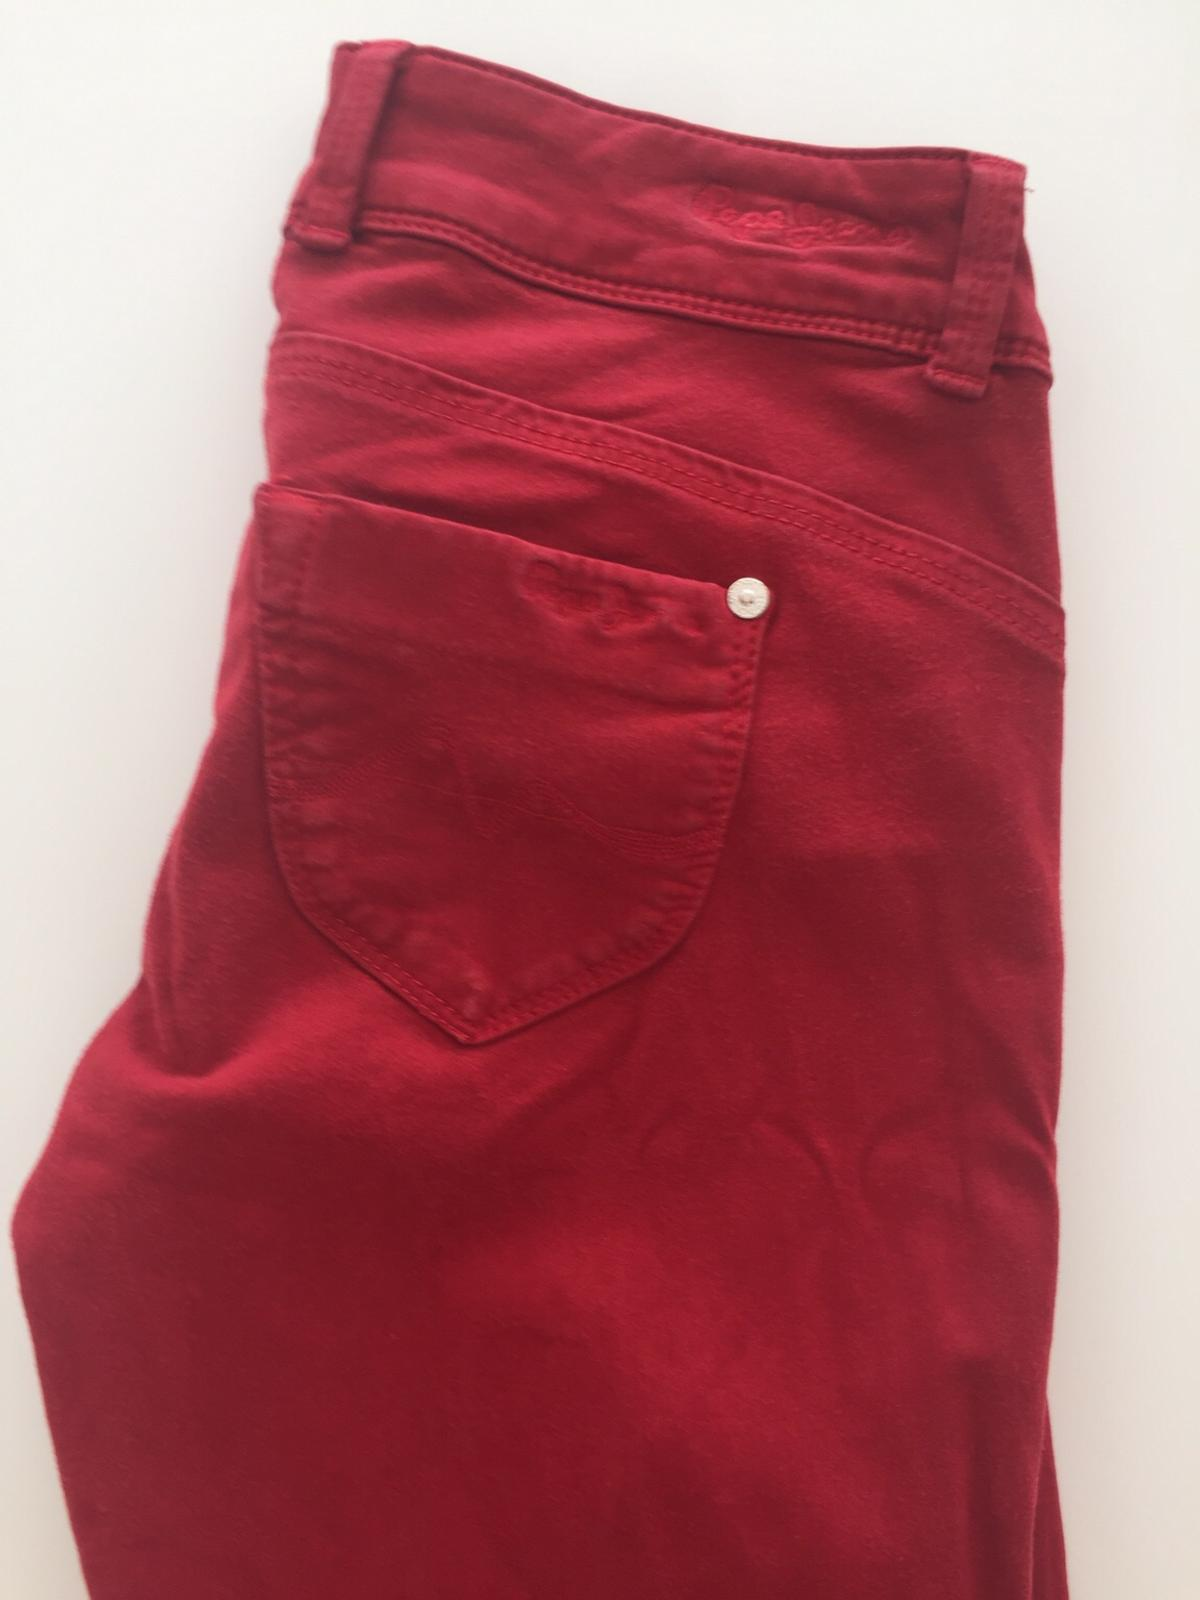 hot sale online 7a2f9 8a8d6 Pepe Jeans 👖 in rot Gr. 28/34 € 25,00